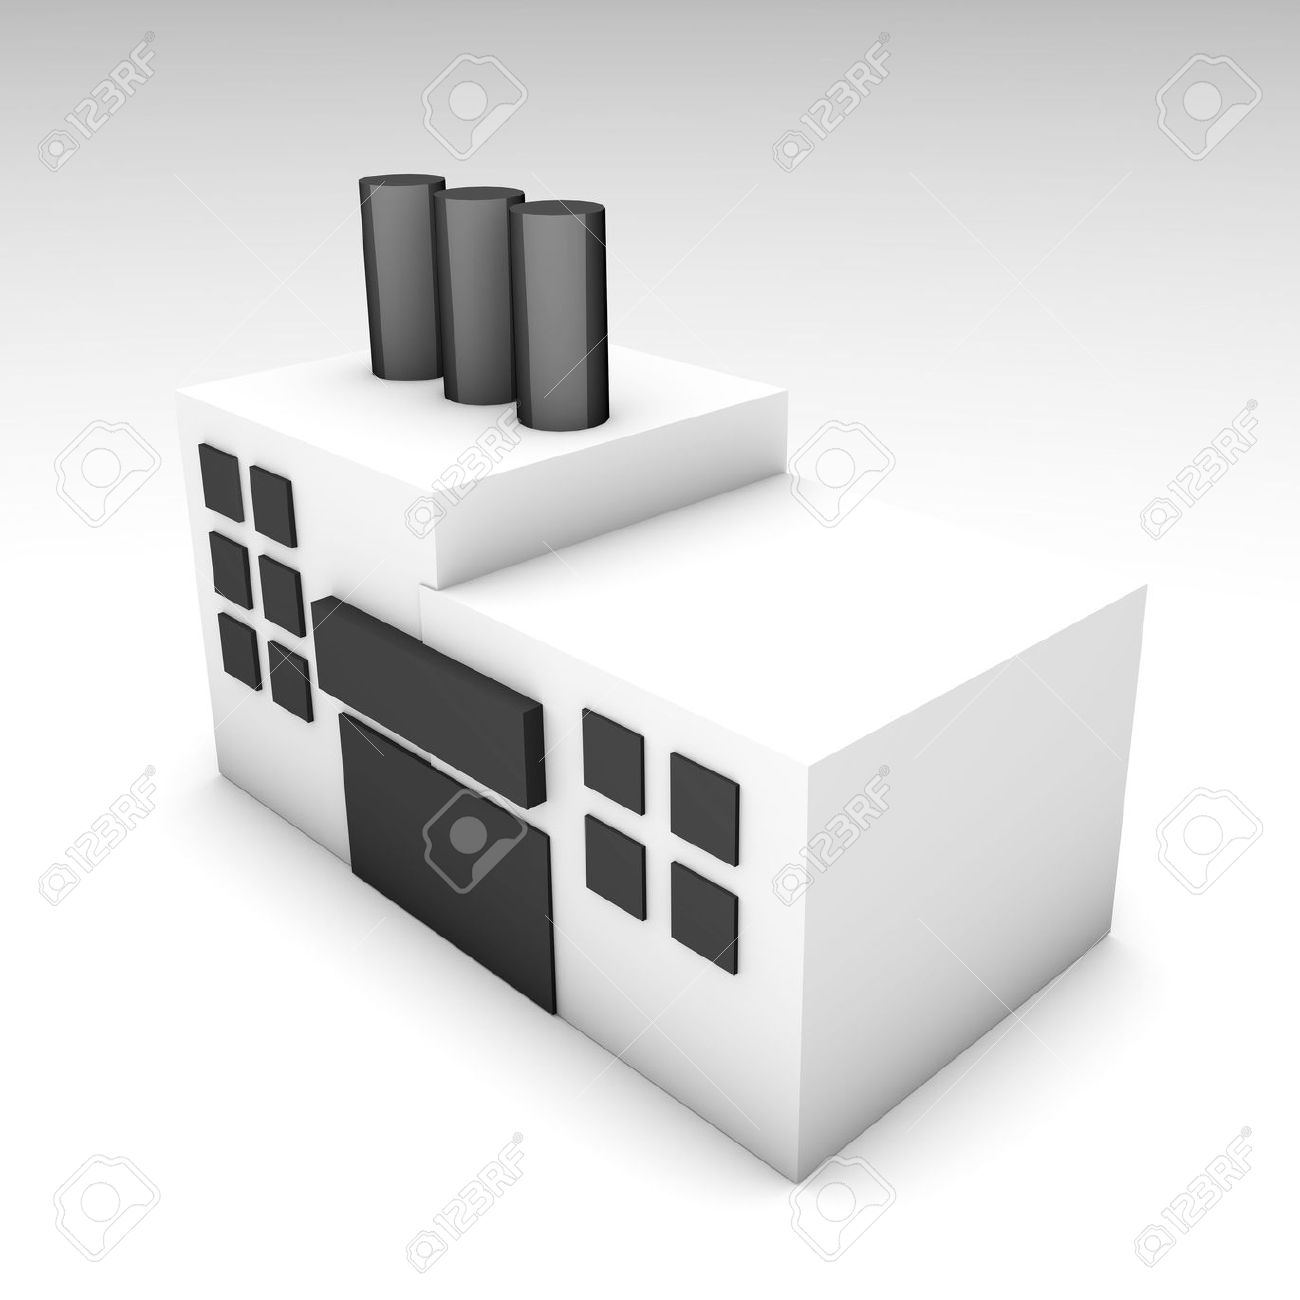 Factory clipart warehouse building Clipart factory%20clipart Free Panda Clipart